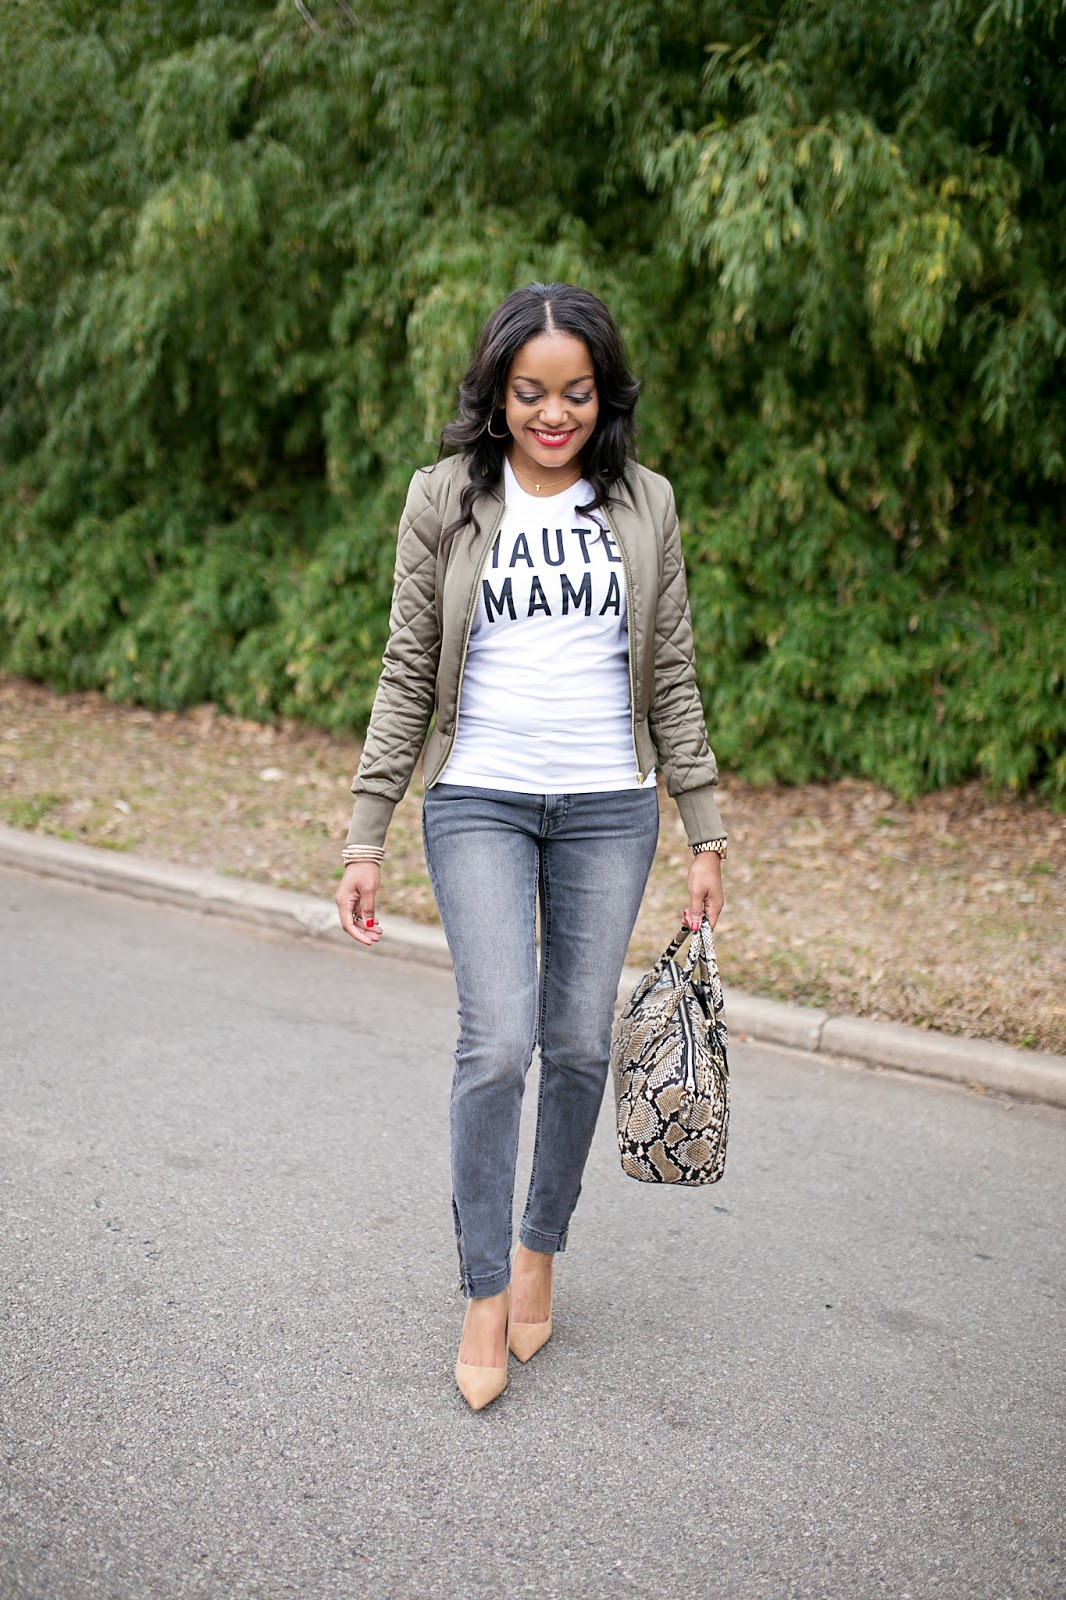 h&m- bomber jacket- green bomber jacket- spring 2016 trend- fashion trend- gray skinny jeans- haute mama graphic tee- t and j designs tee- zara nude pumps- snakeskin Target handbag- how to wear graphic tee- date night look- mommy fashion- dallas blogger- fashion blogger- black girl blogger